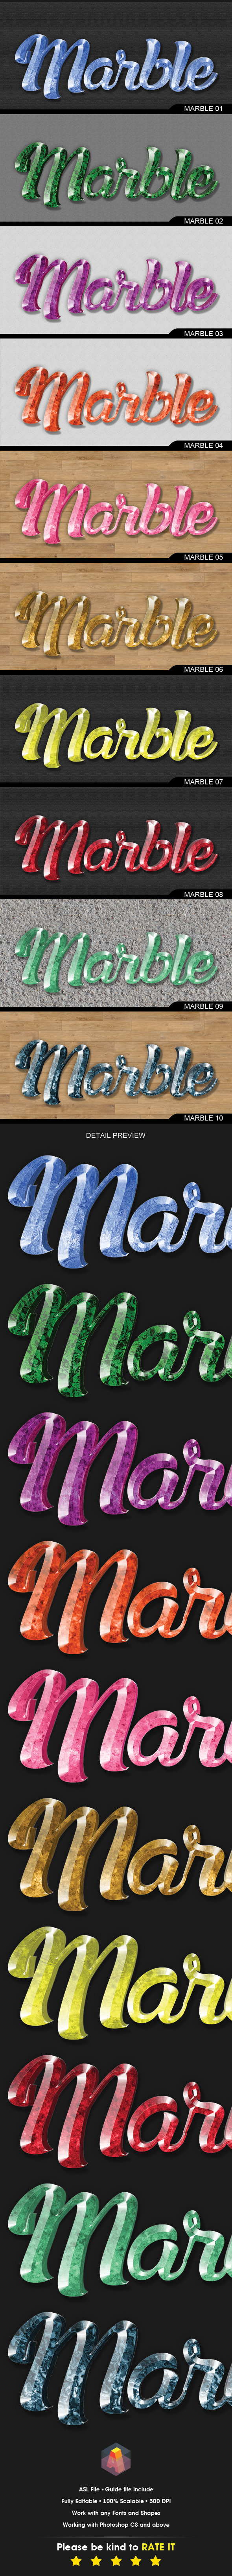 3D Text Effects Marble/Gem Stone Styles - Text Effects Styles